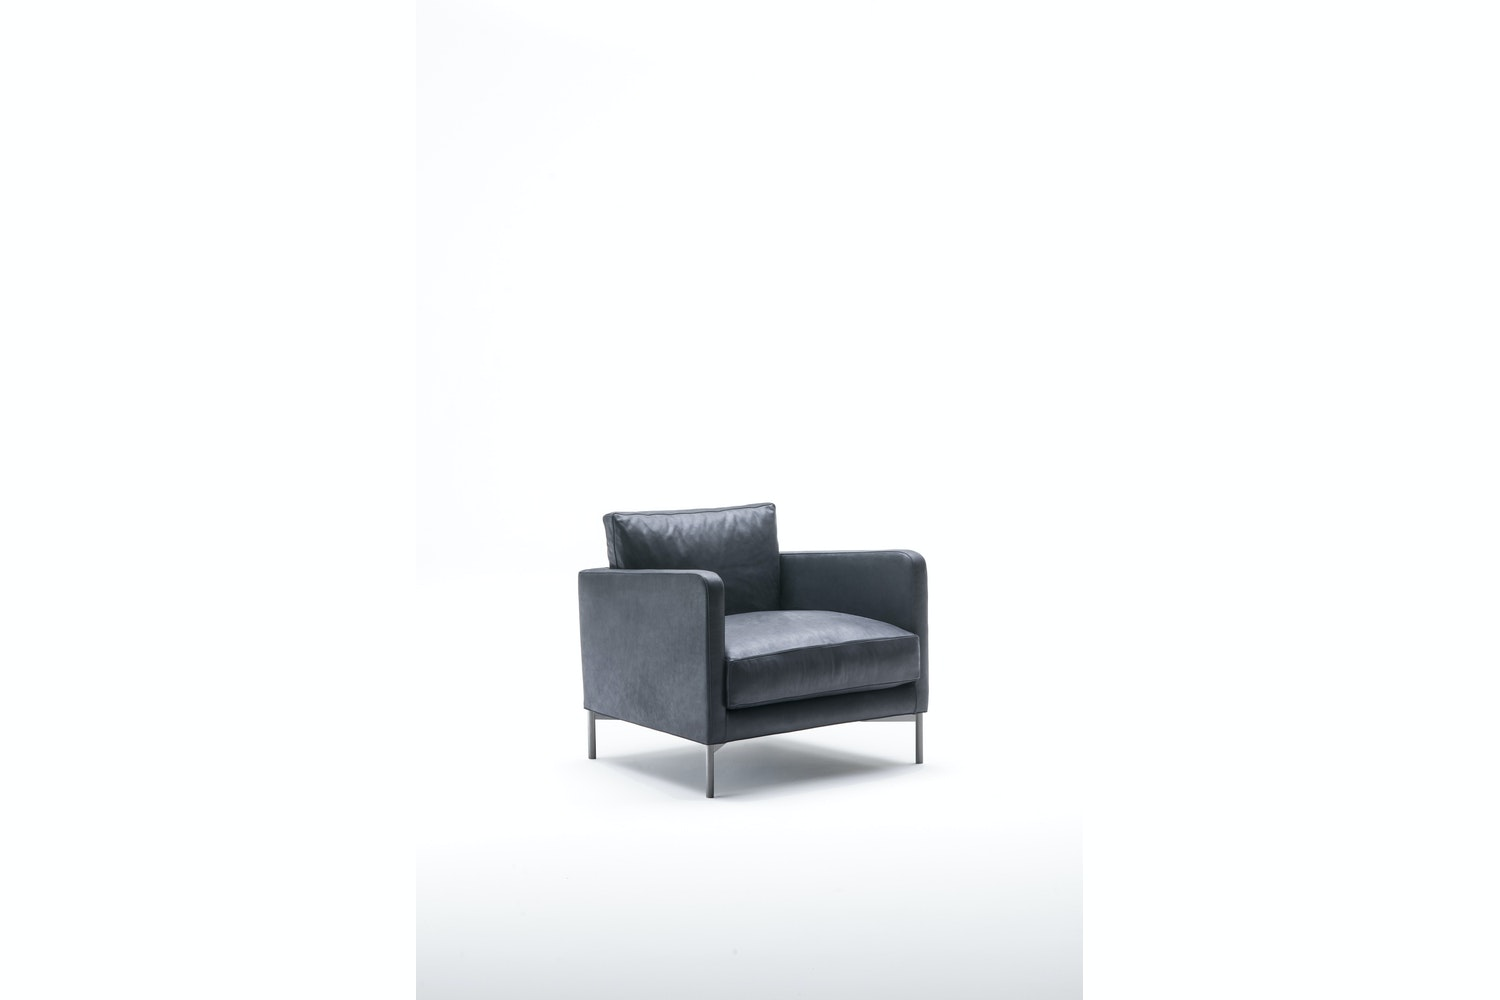 Dumas by Piero Lissoni for Living Divani